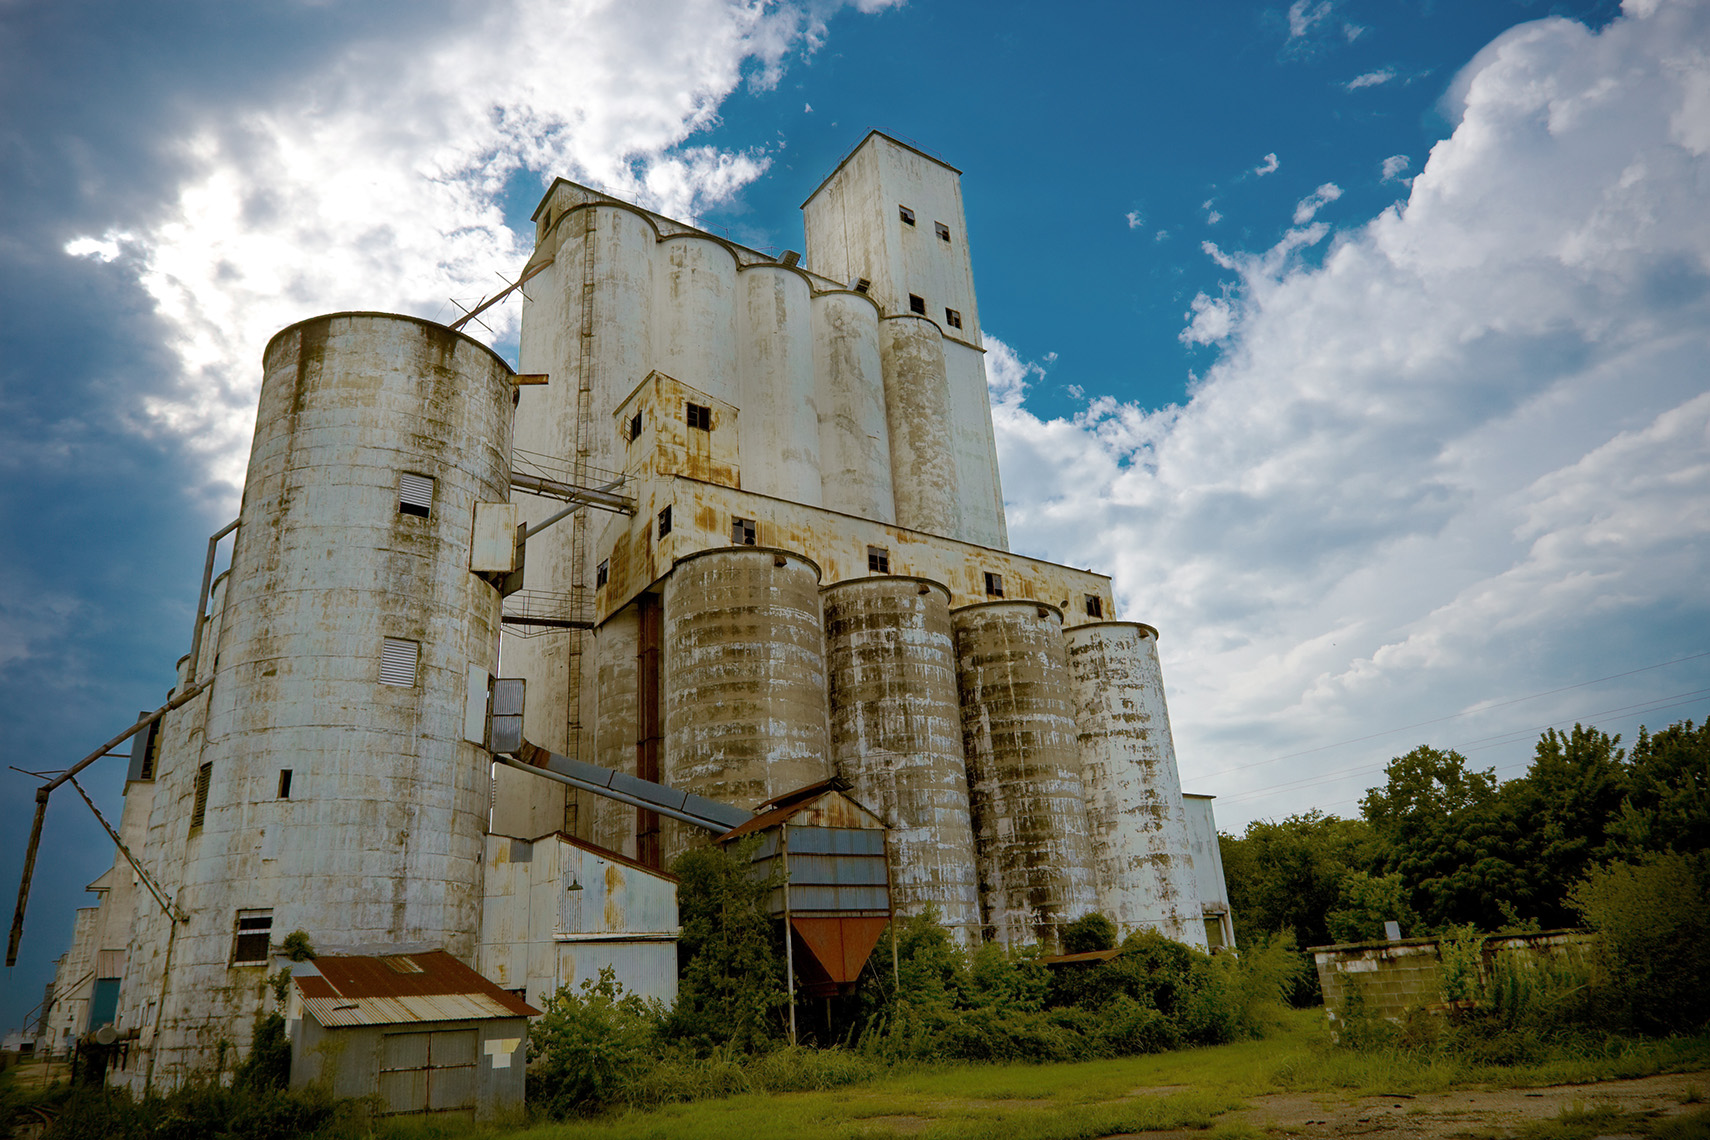 abandoned-grain-elevator-storm-clouds-Texas